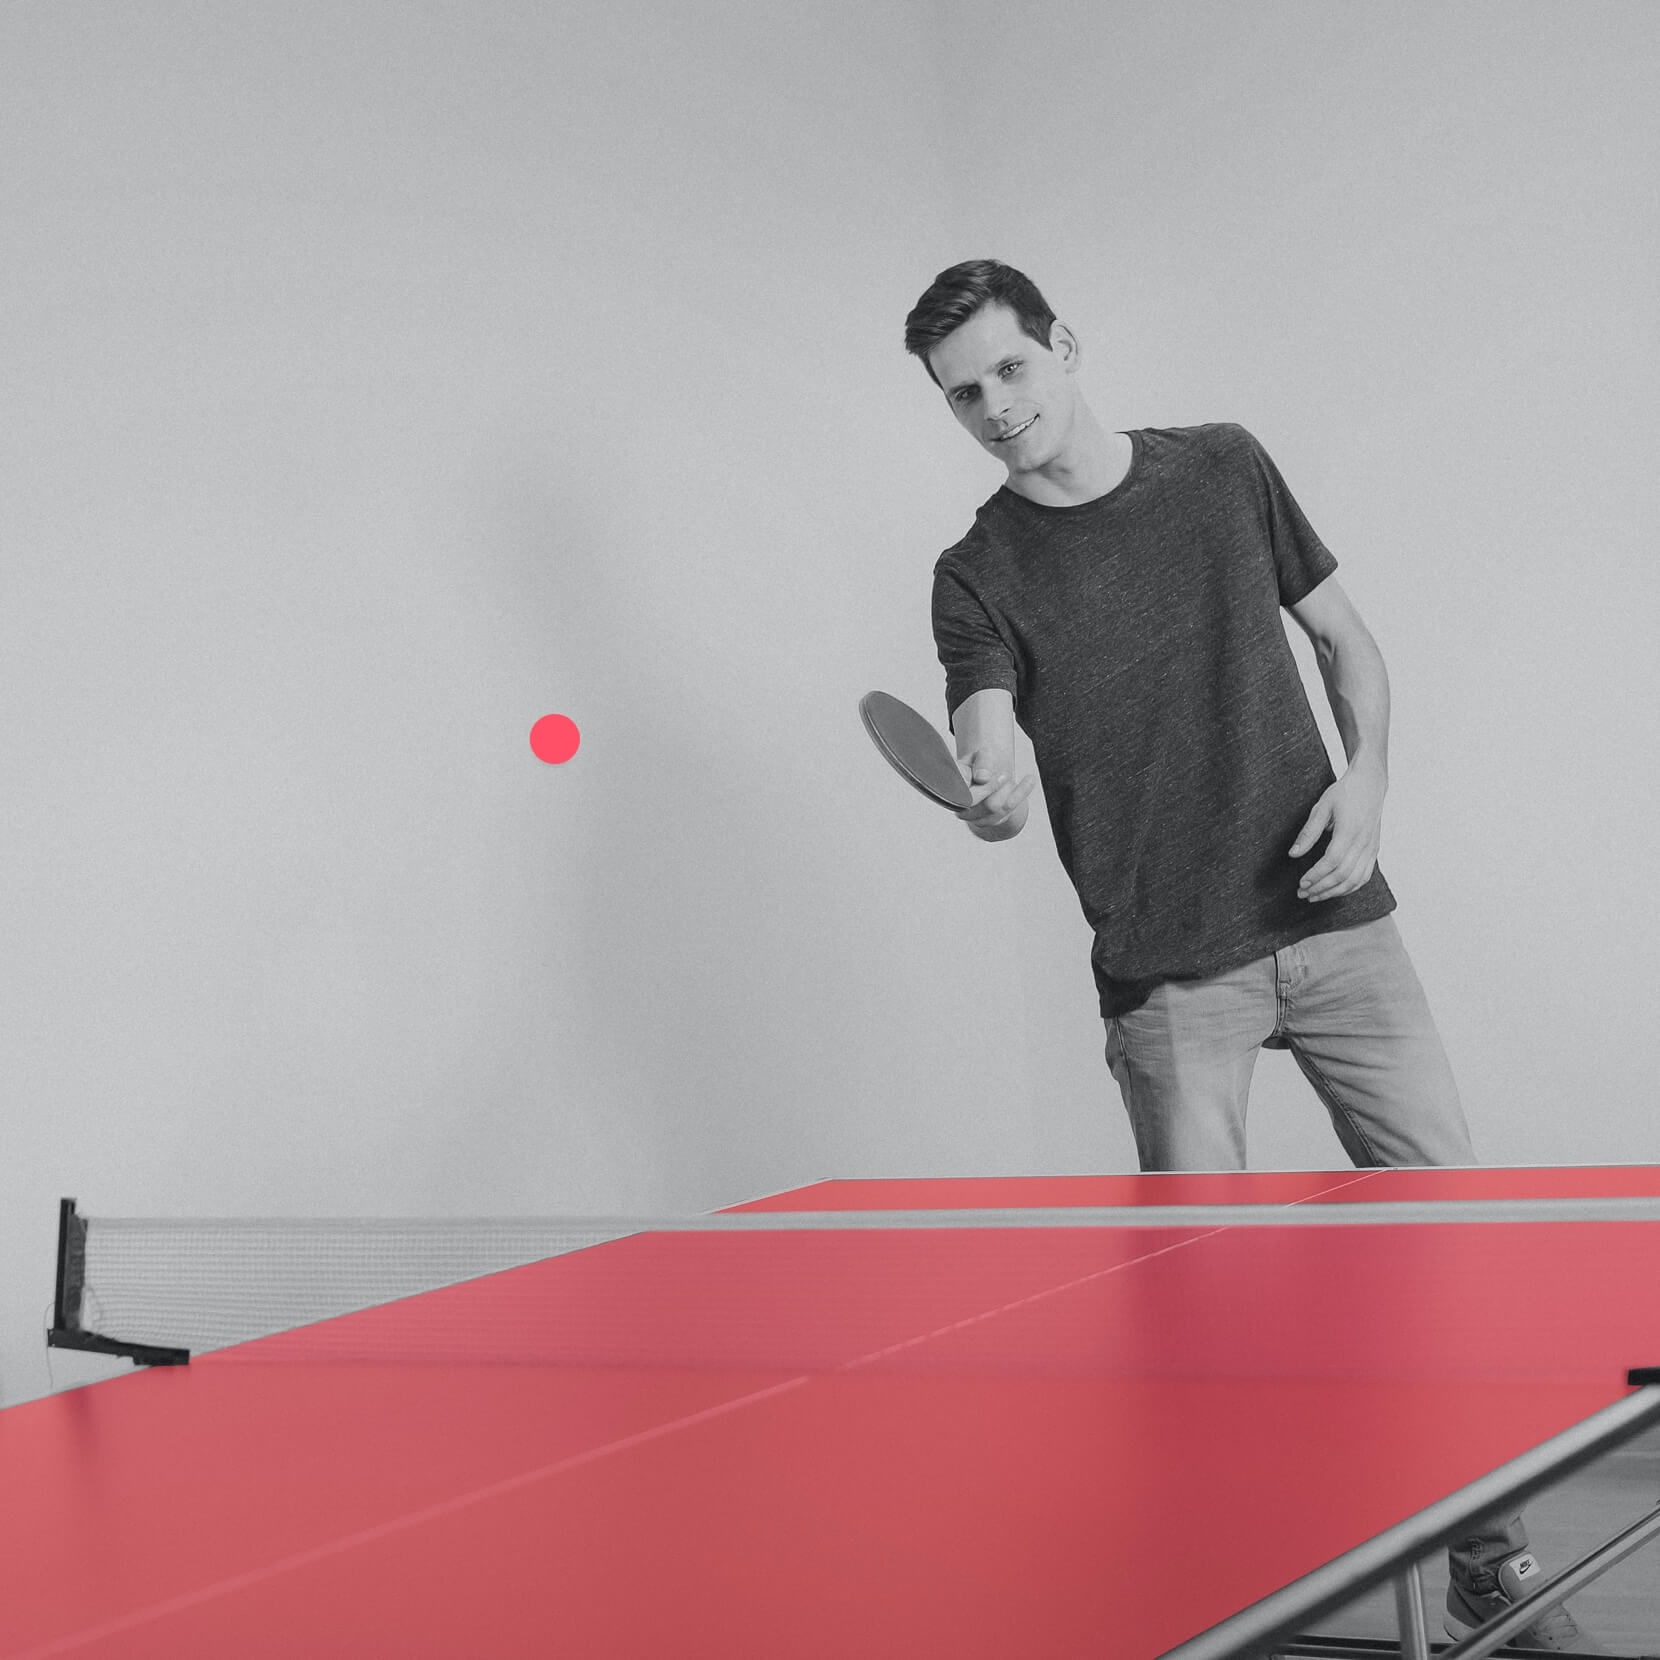 Https://tractionguest.com/wp content/uploads/careers pingpong.jpg